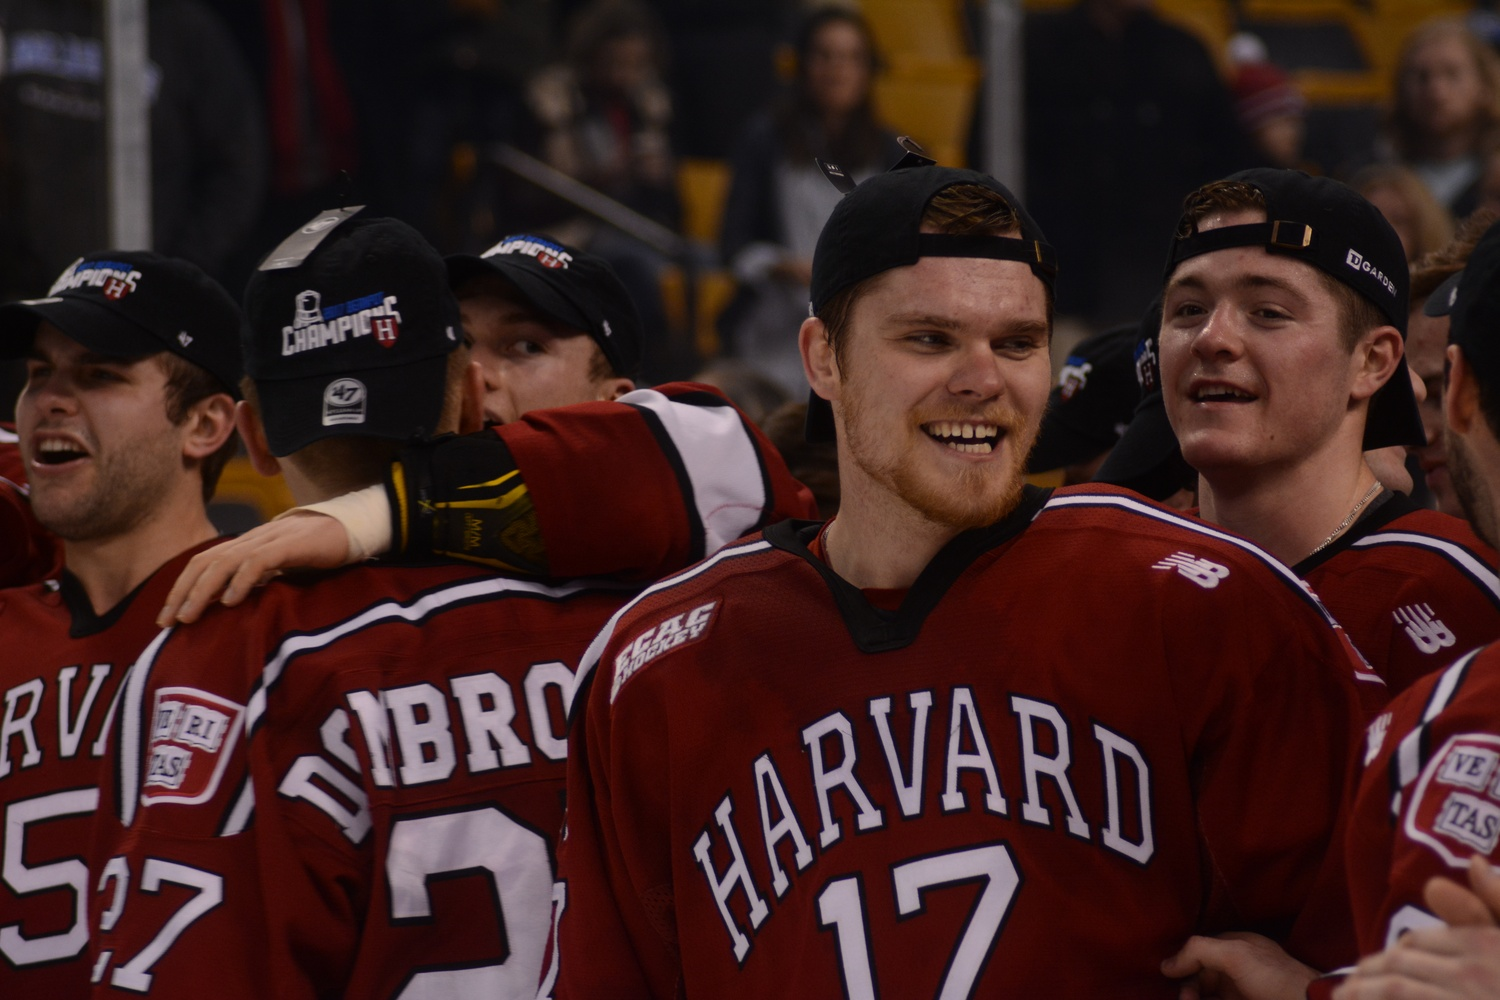 Senior Sean Malone is all smiles after winning the Beanpot.